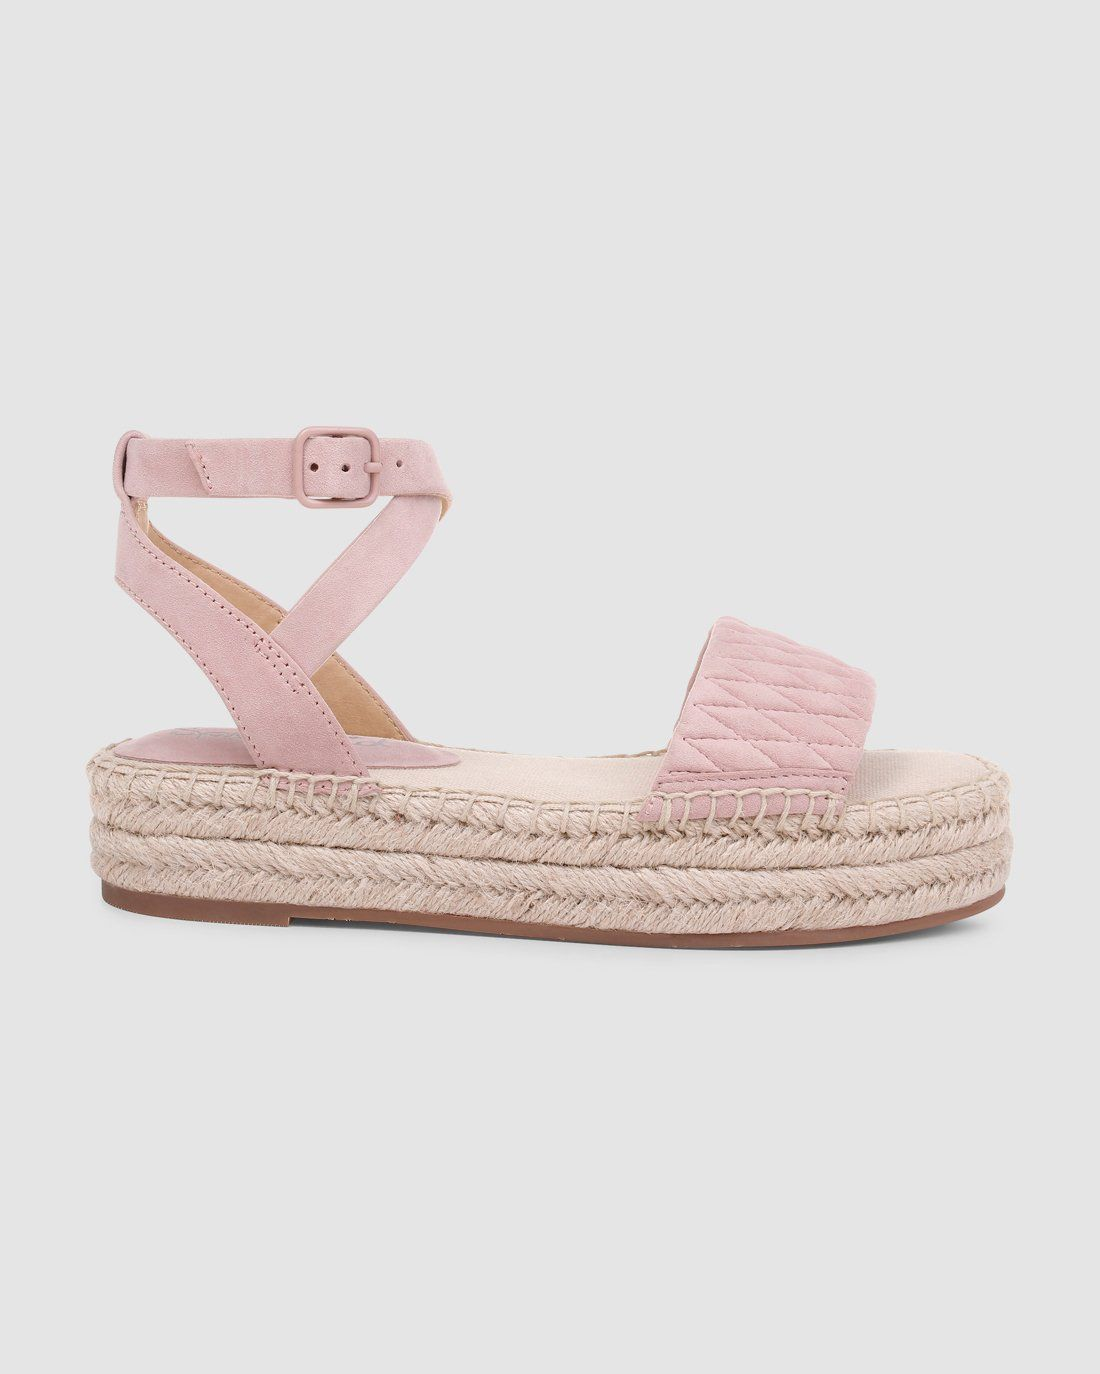 9a906d7cf1a Seward Sandal in 2019 | Life of the Party | Sandals, Espadrilles ...